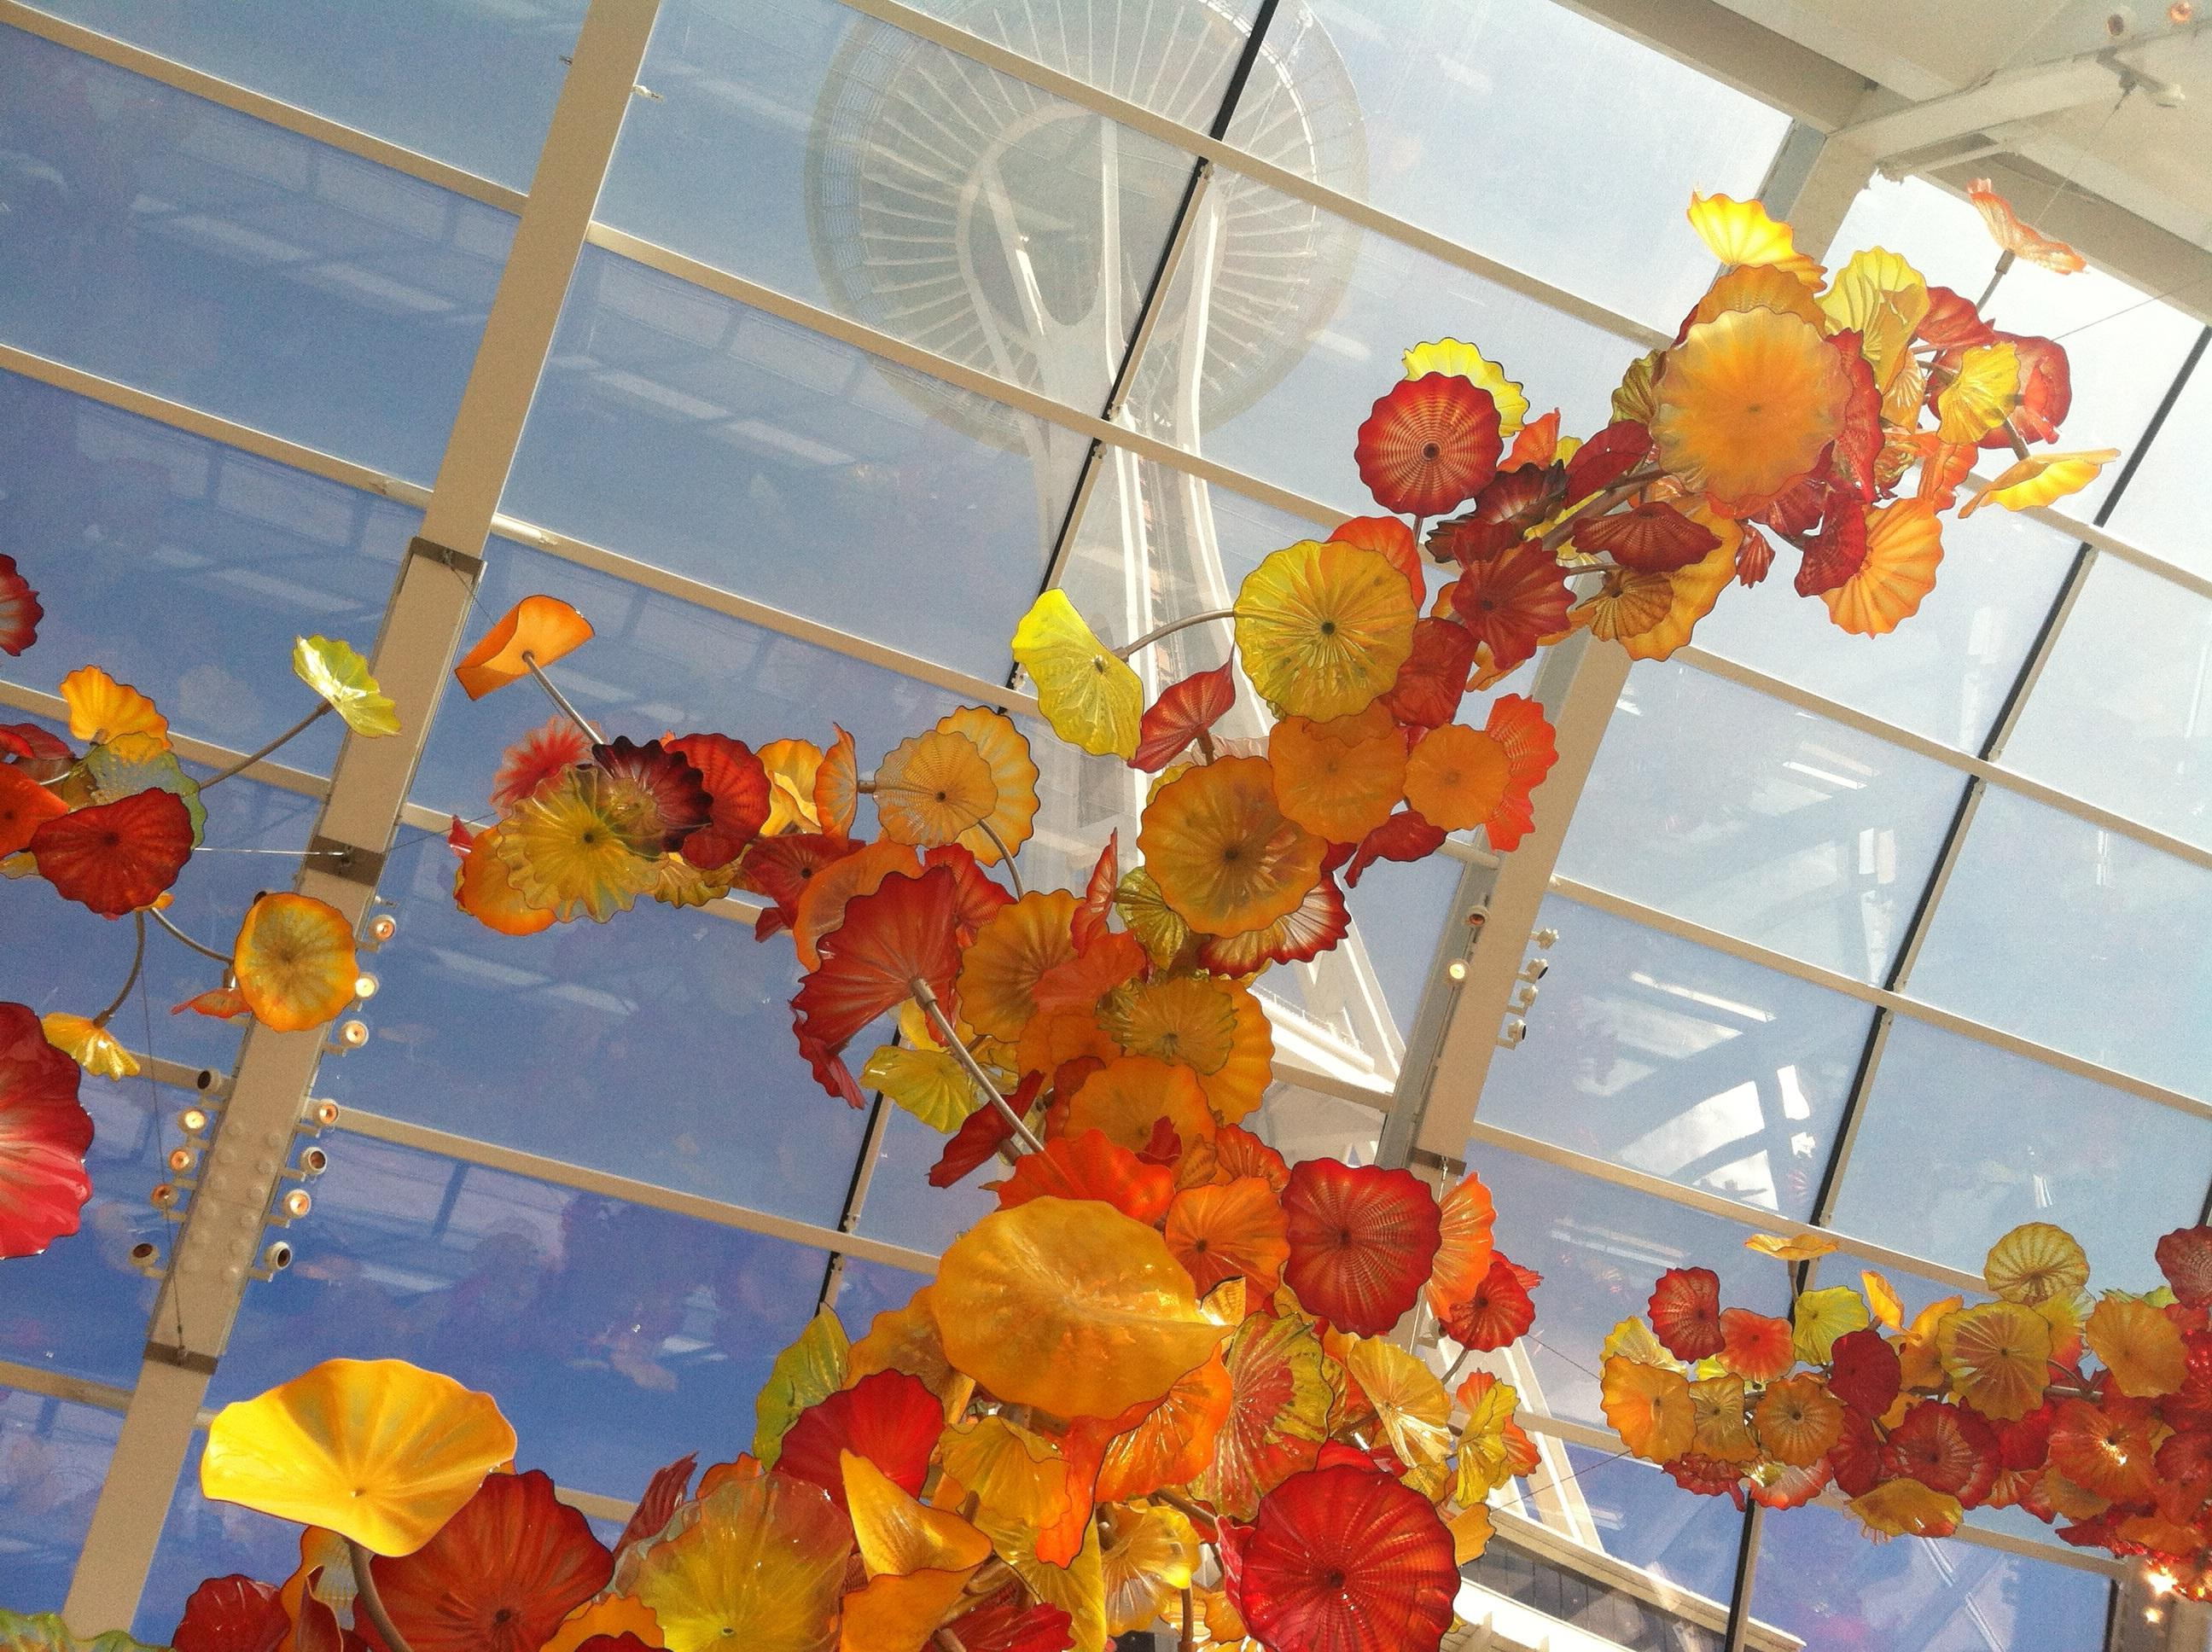 Chihuly Glass Garden and Space Needle